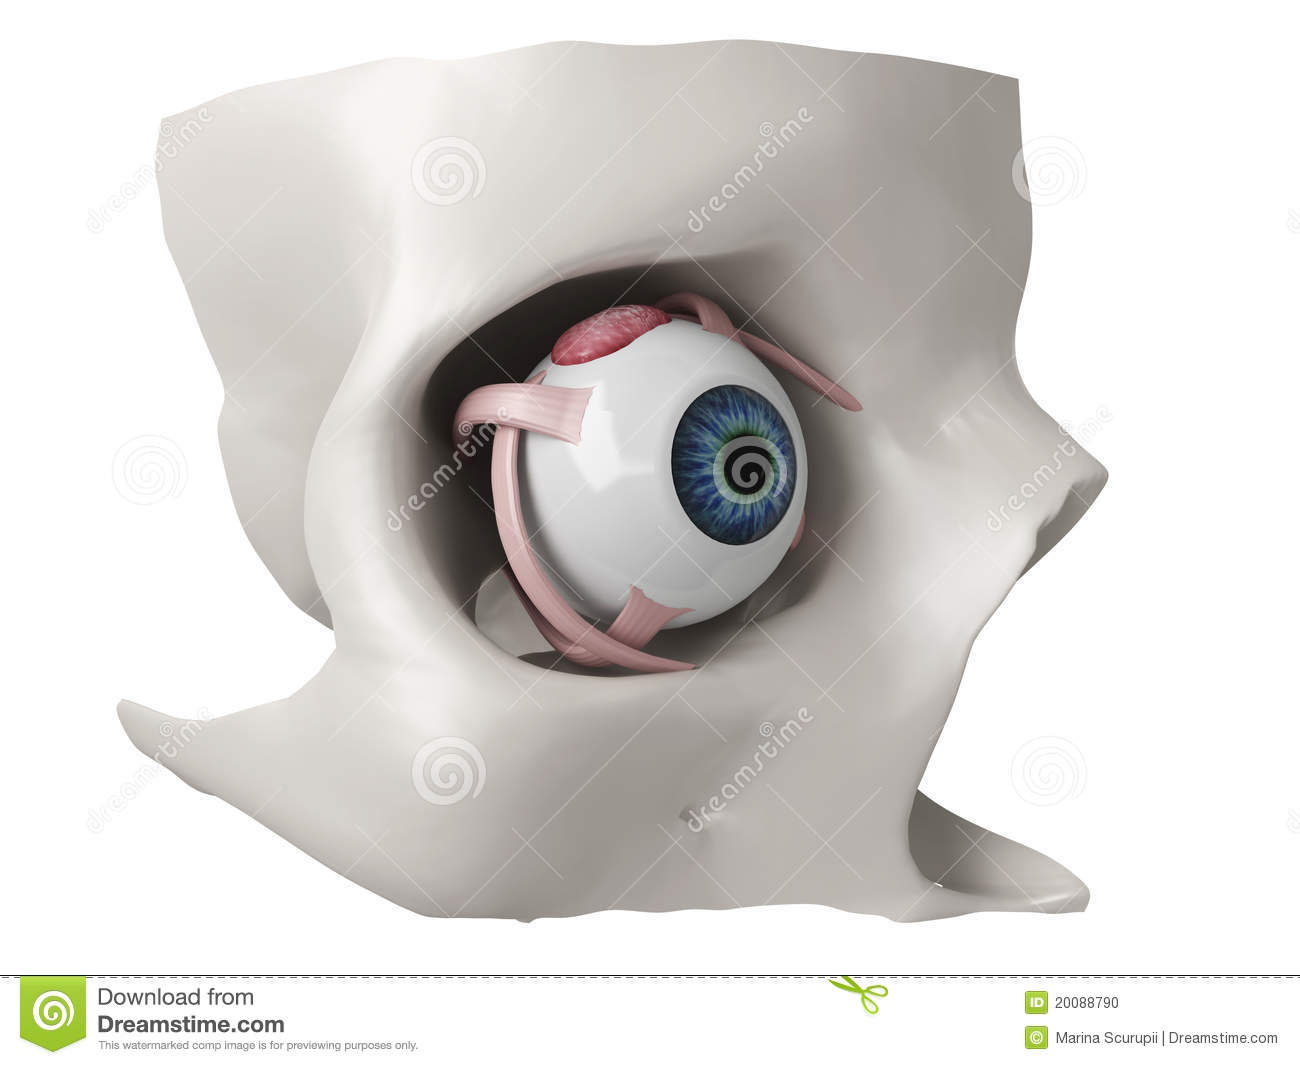 3d eye anatomy model stock illustration. Illustration of healthcare ...